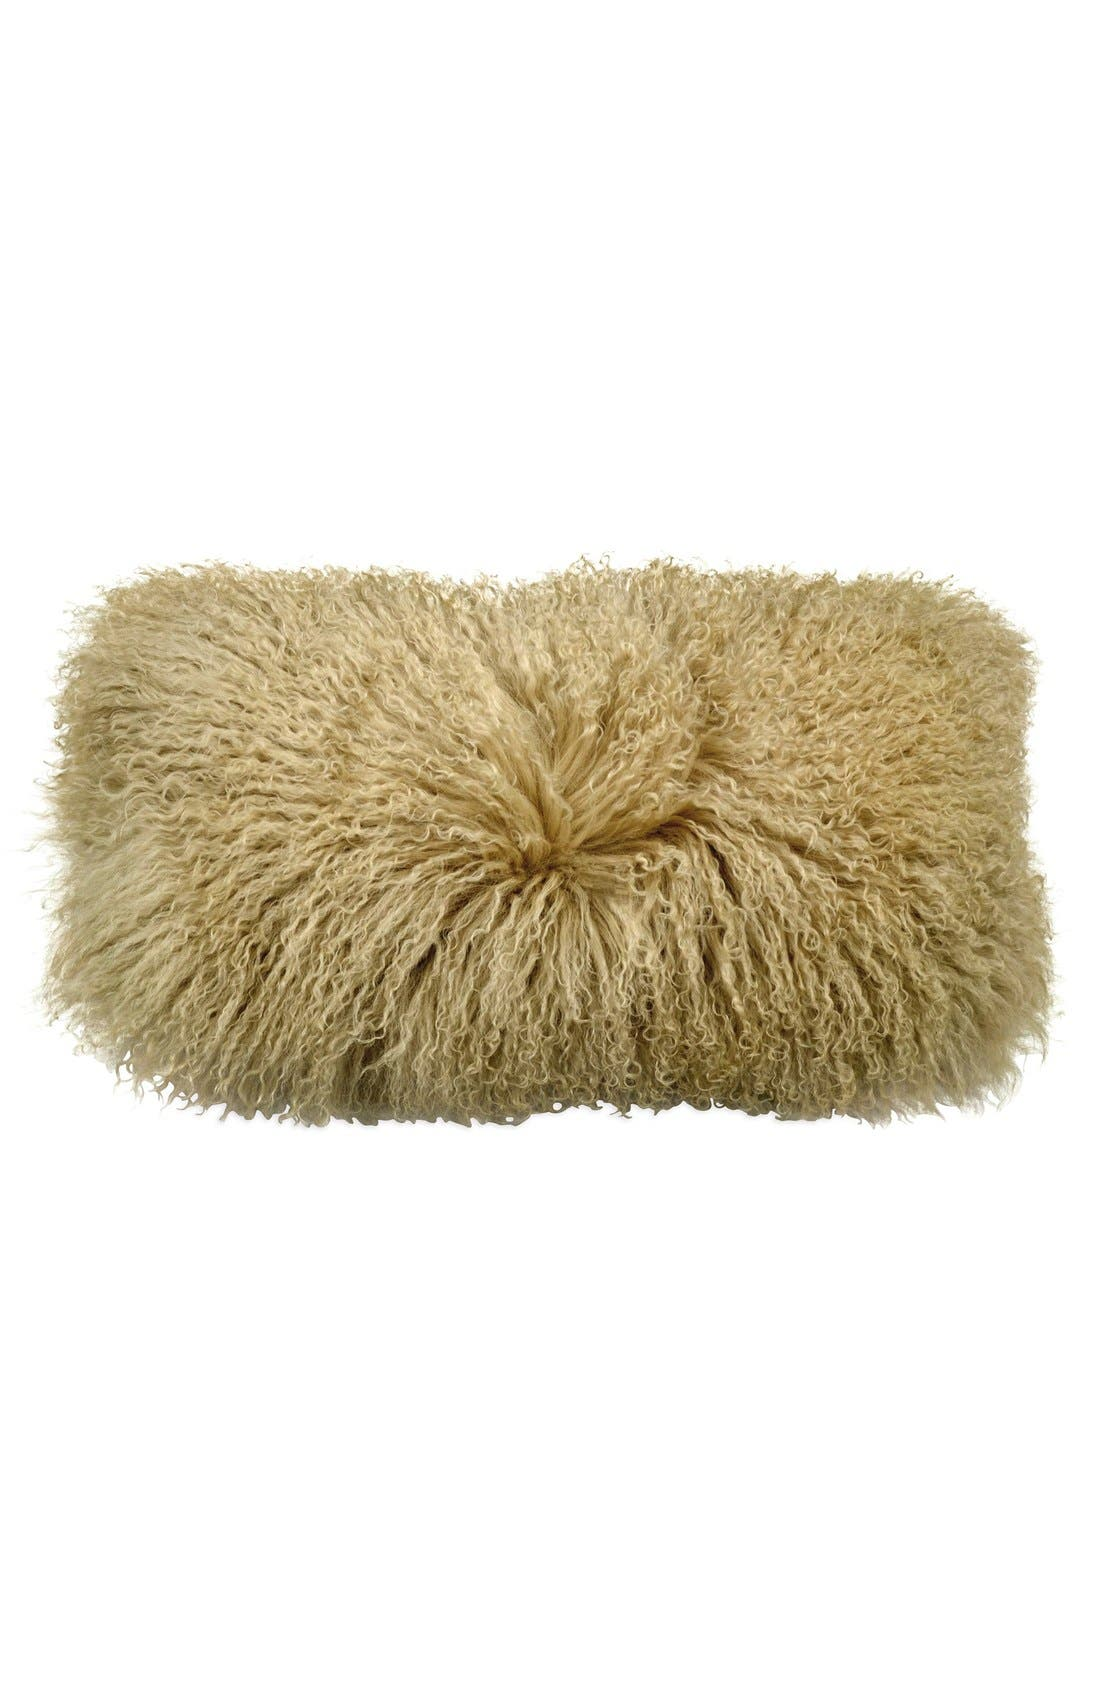 Flokati Genuine Shearling Pillow,                             Main thumbnail 1, color,                             710